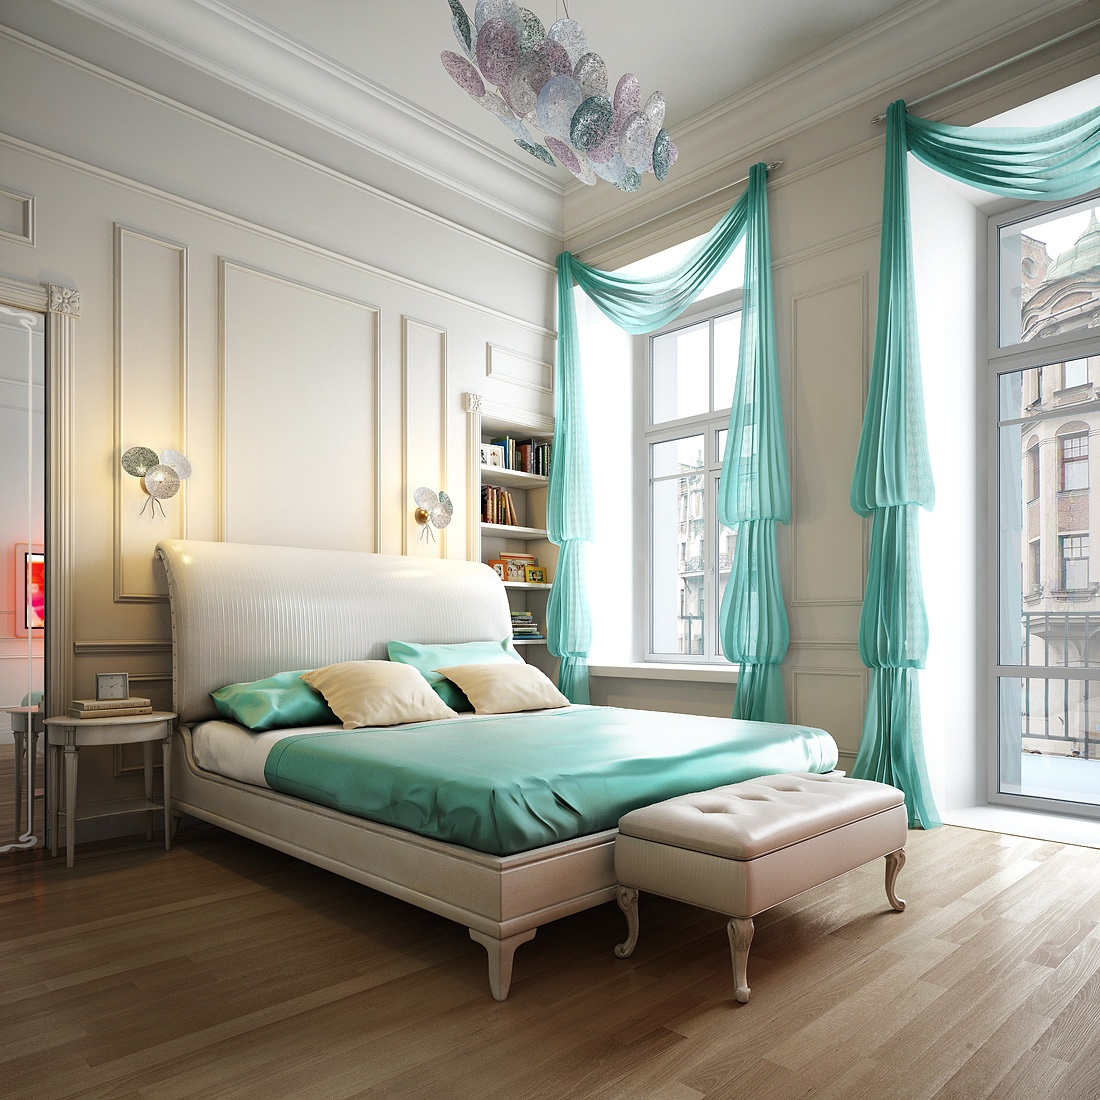 romantic-bedrom-decorated-with-spacious-curtains-1